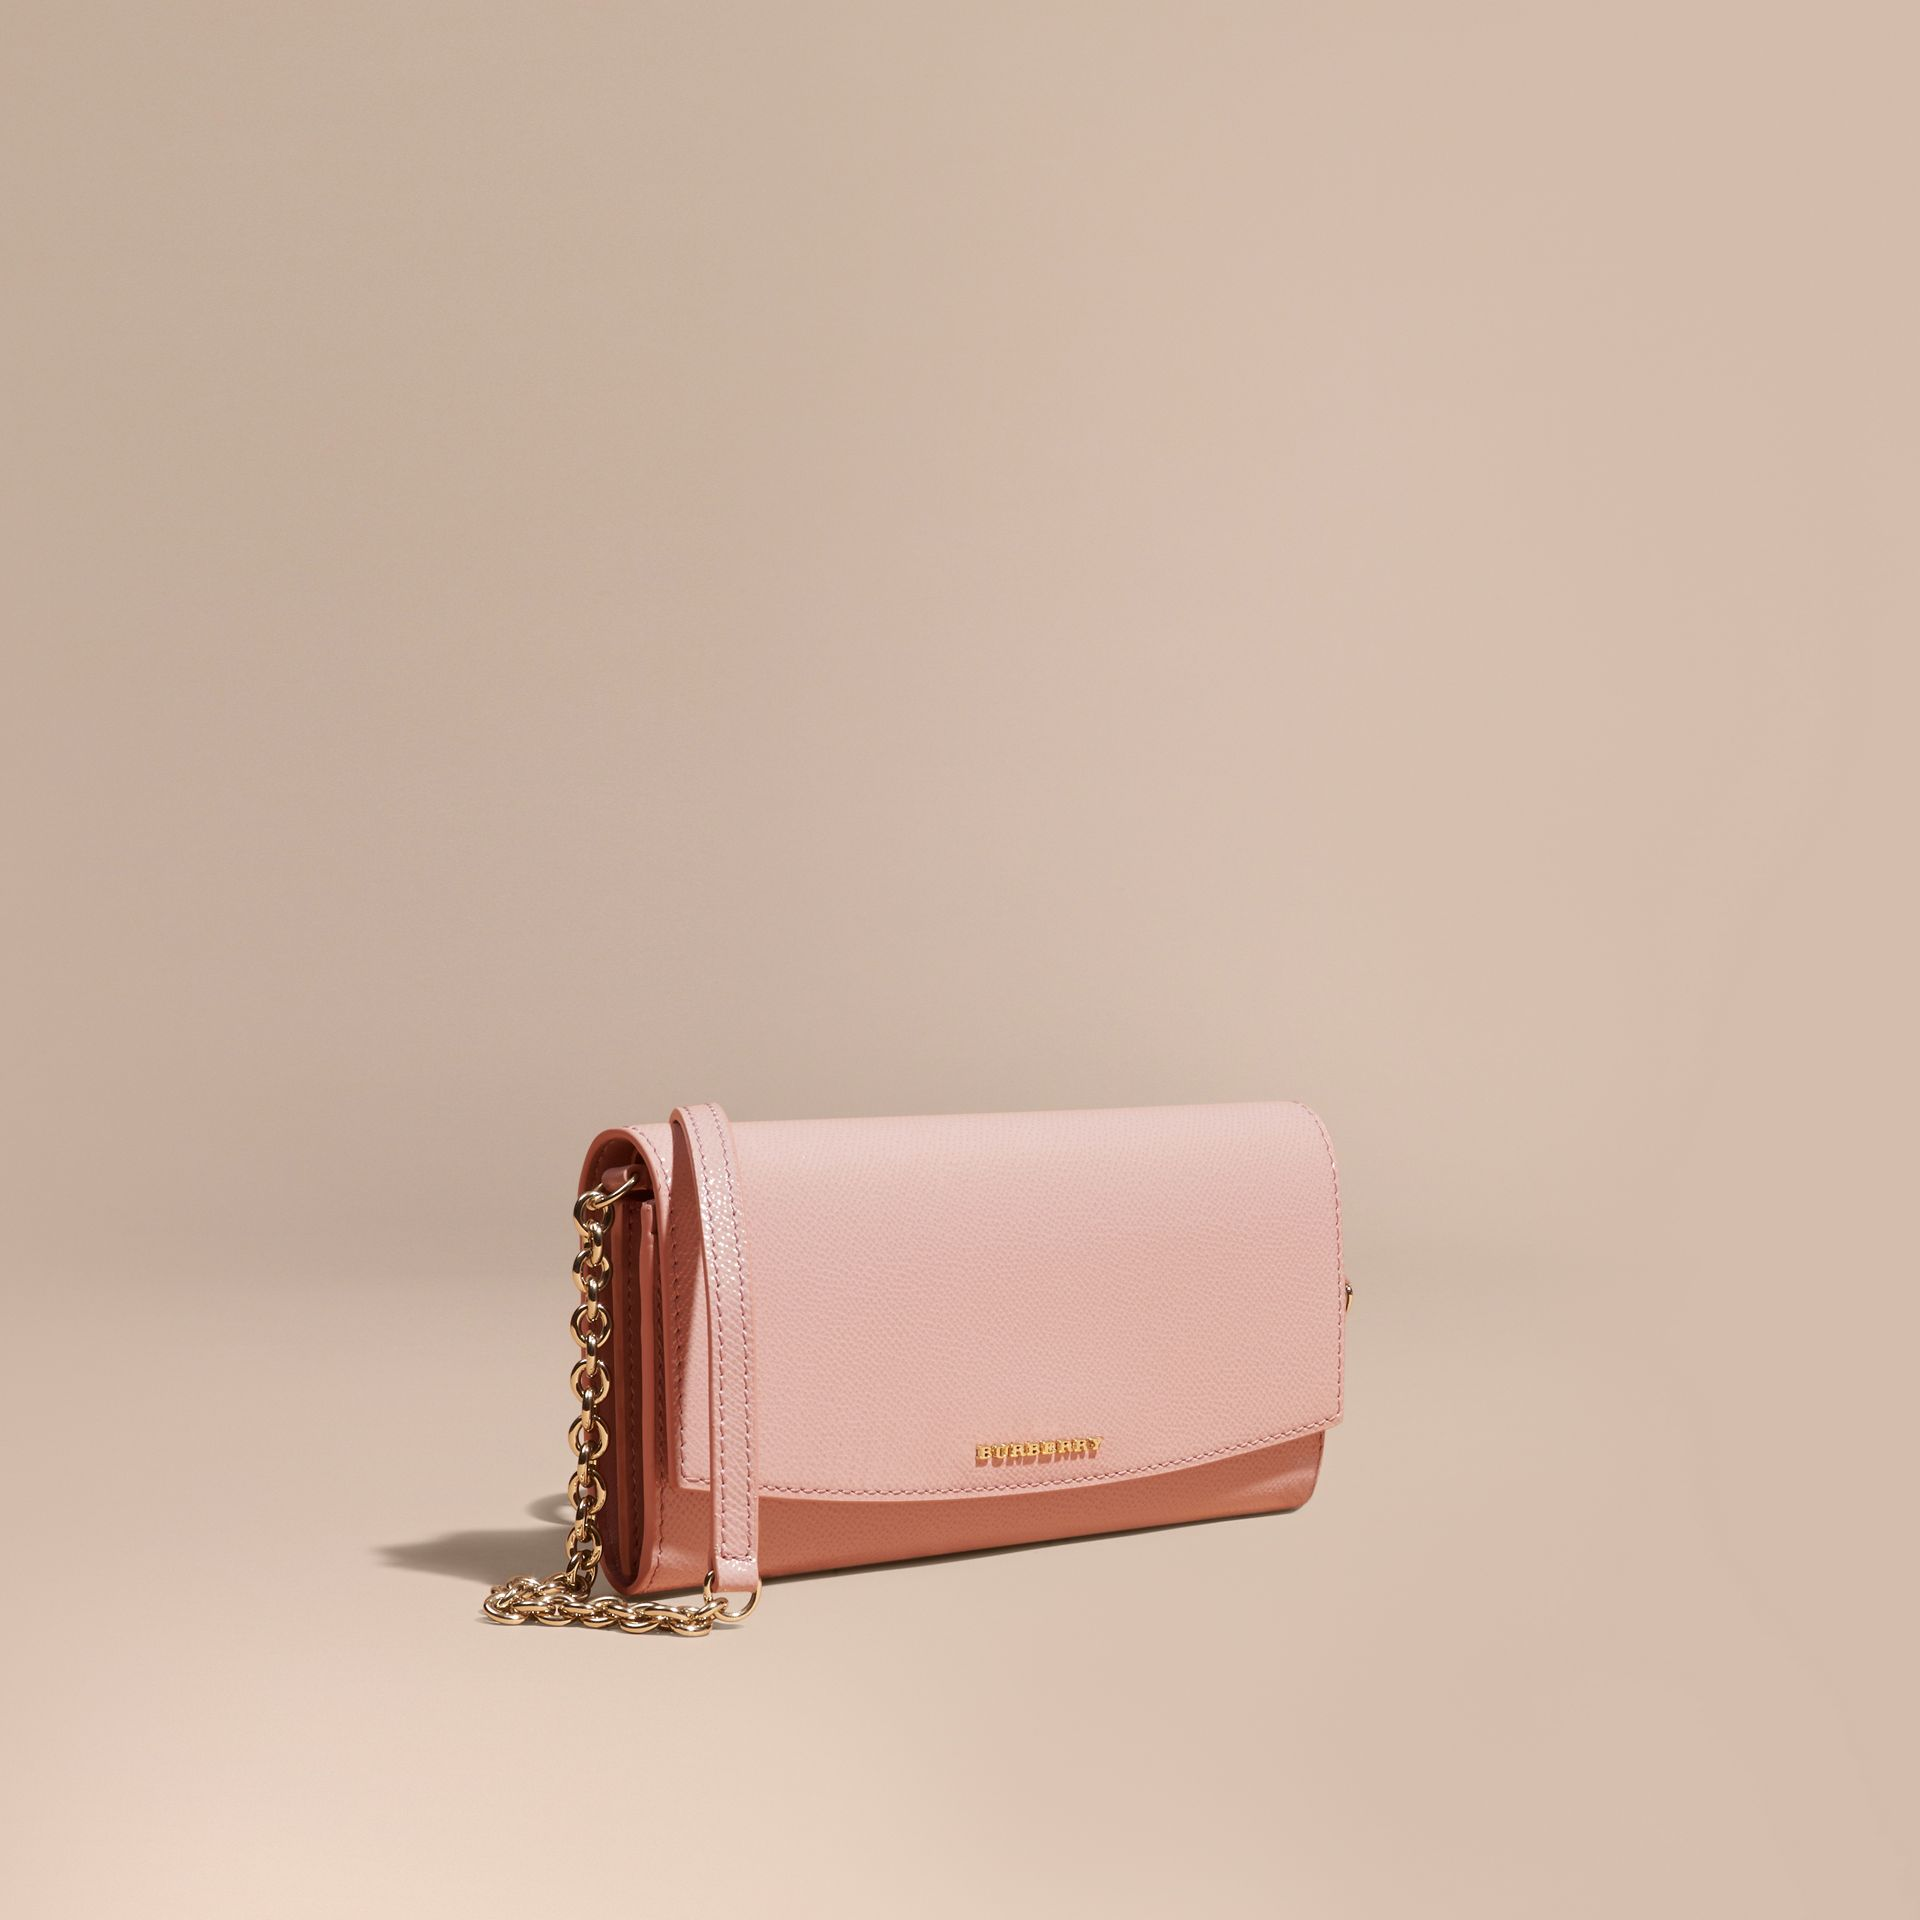 Ash rose Leather Wallet with Chain Ash Rose - gallery image 1